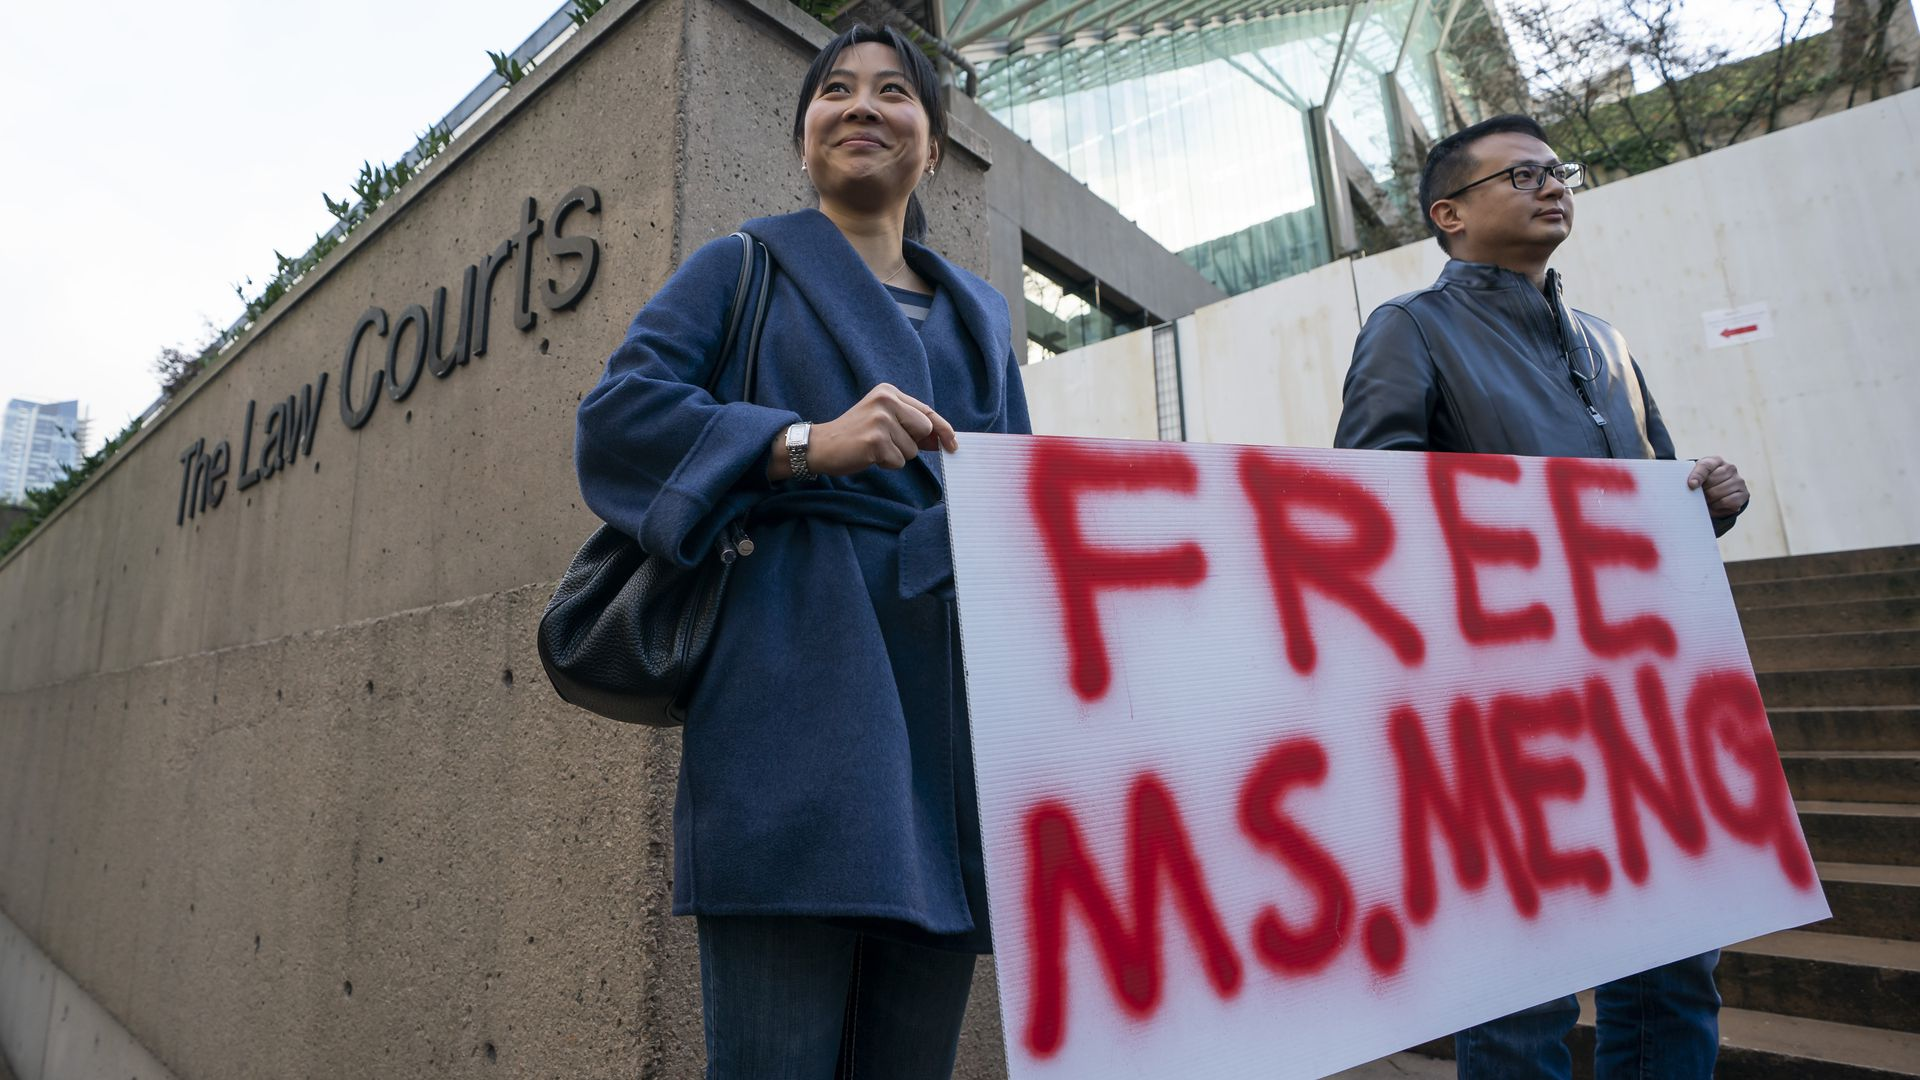 """Protesters carrying sign reading """"Free Ms. Meng"""" outside courthouse"""